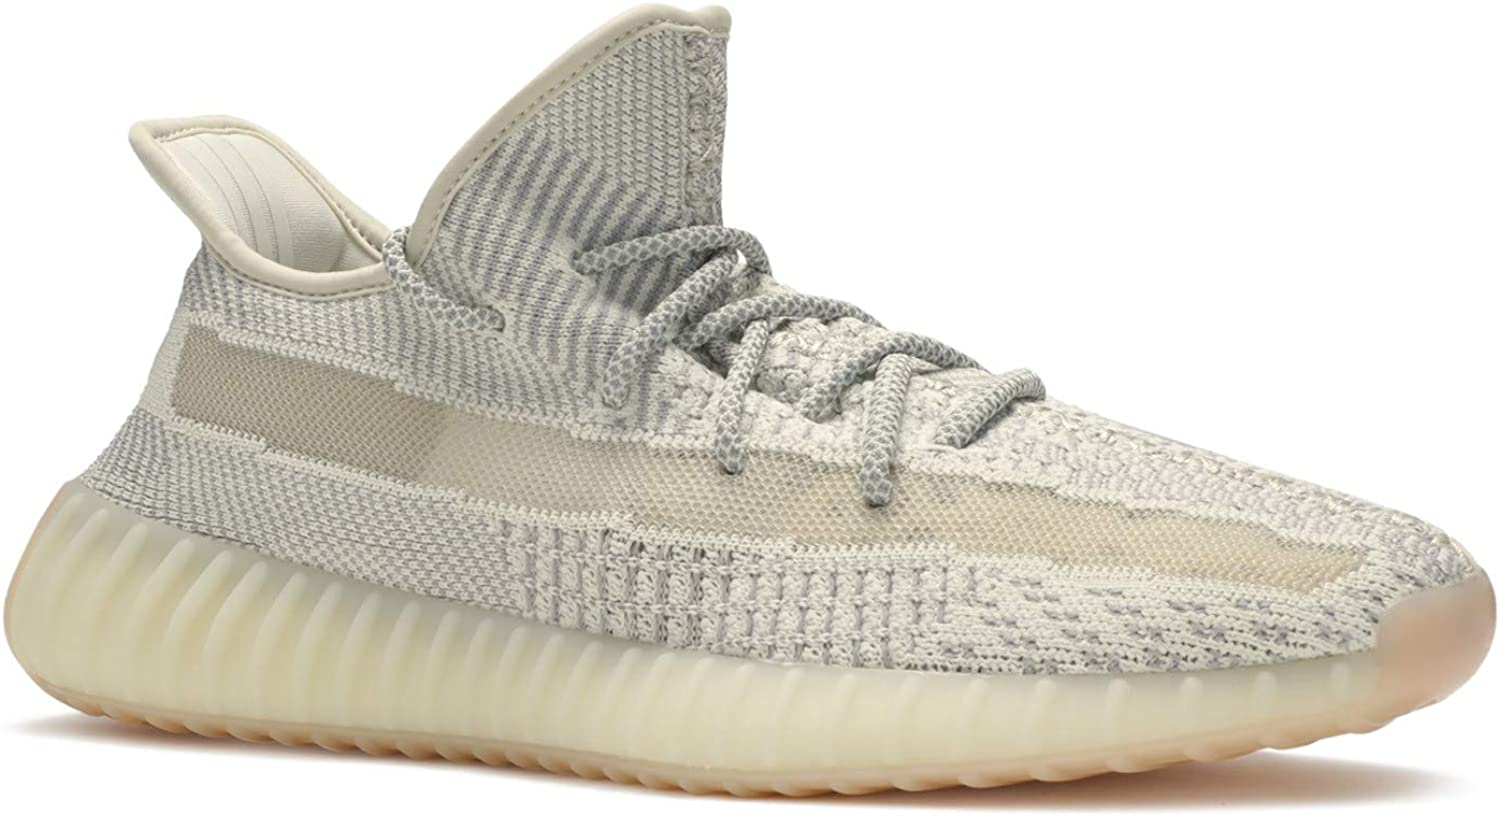 coger un resfriado fiabilidad Manifestación  adidas Yeezy Boost 350 V2 'LUNDMARK '- FU9006: Amazon.co.uk: Shoes & Bags